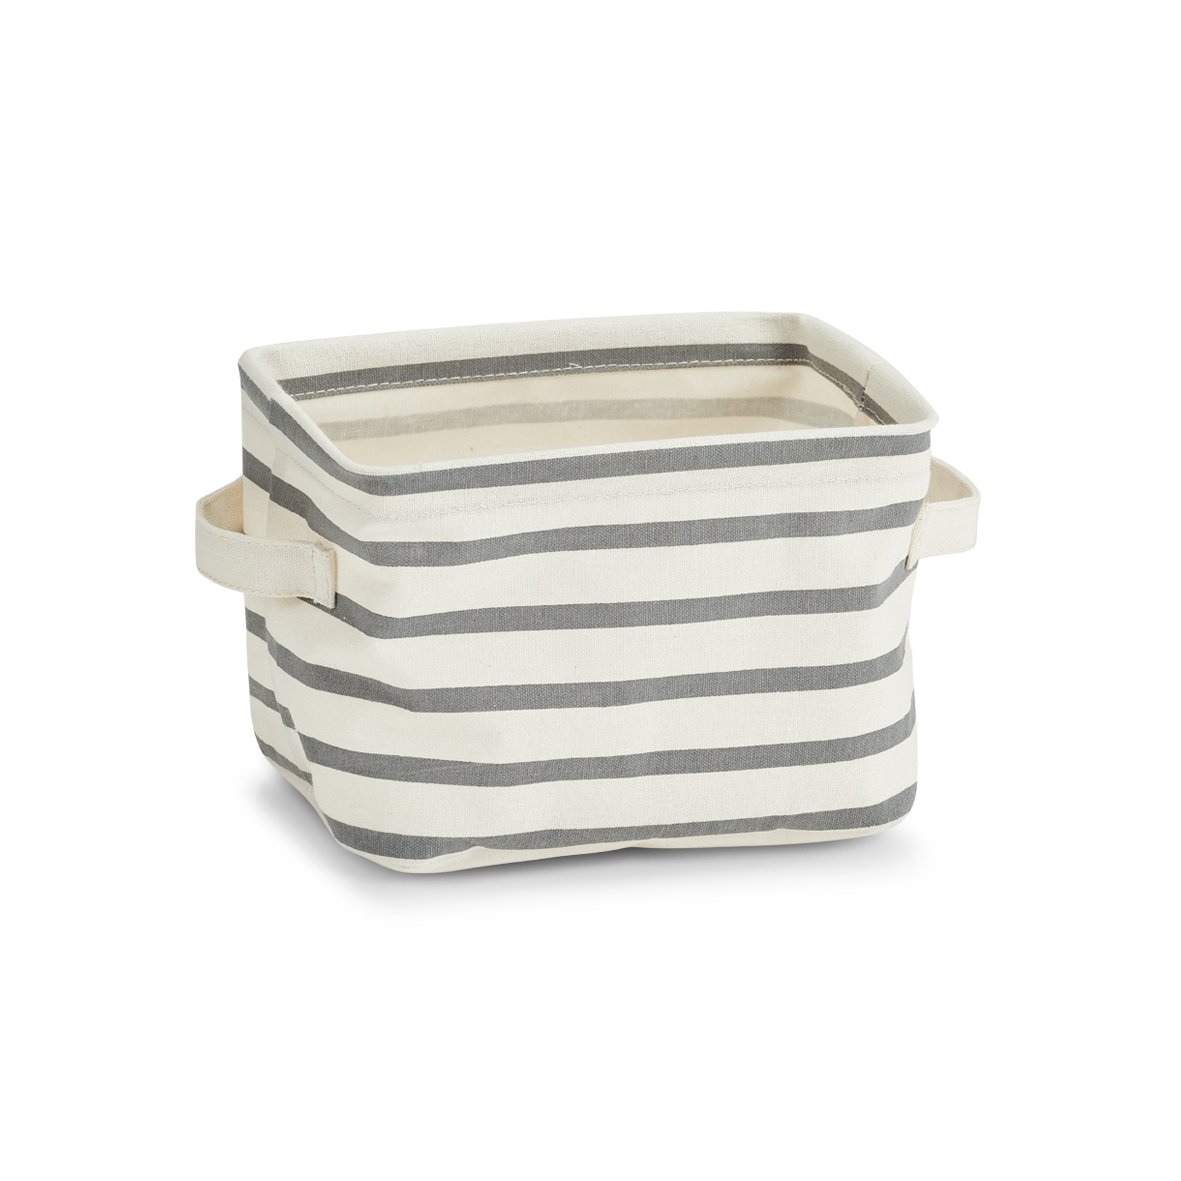 Cos pentru depozitare din panza, Grey Stripes, l21xA17xH14 cm imagine